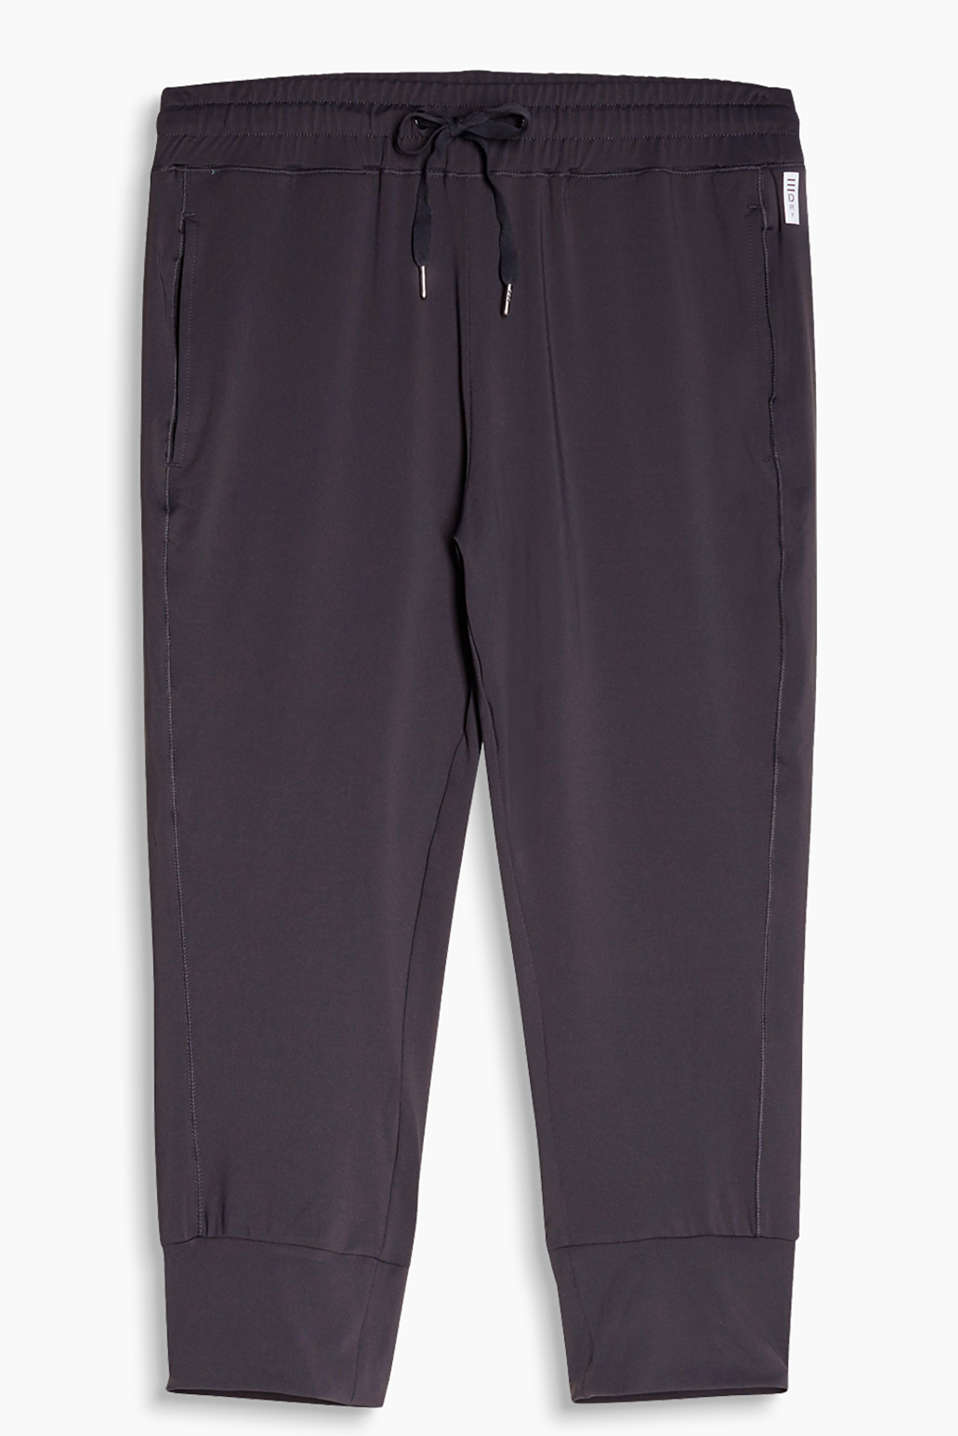 Activewear capris with cuffs, E-DRY